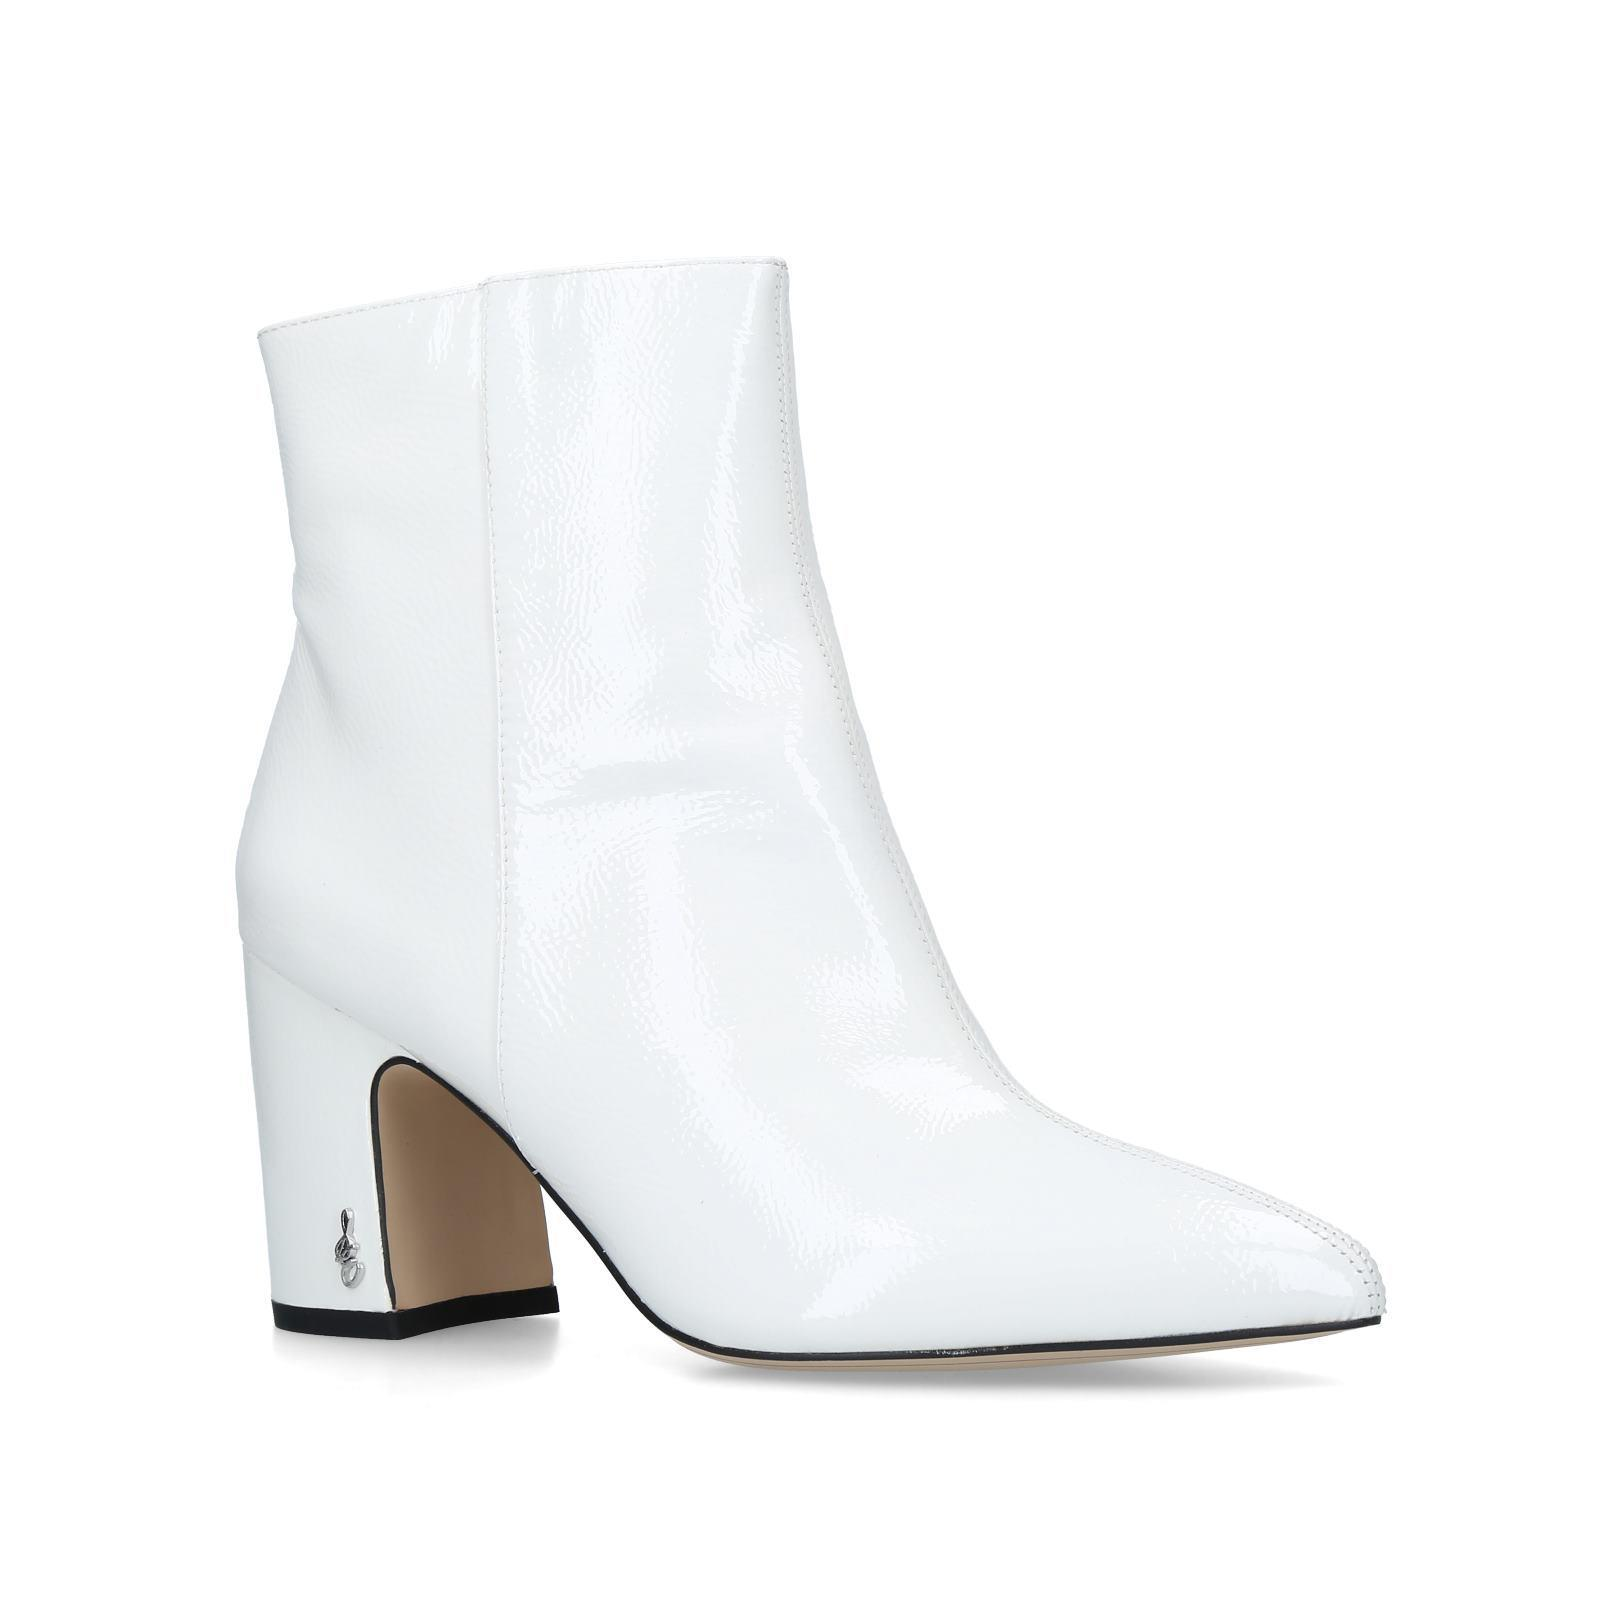 35c8358c589 Sam Edelman Hilty Ankle Boot in White - Lyst